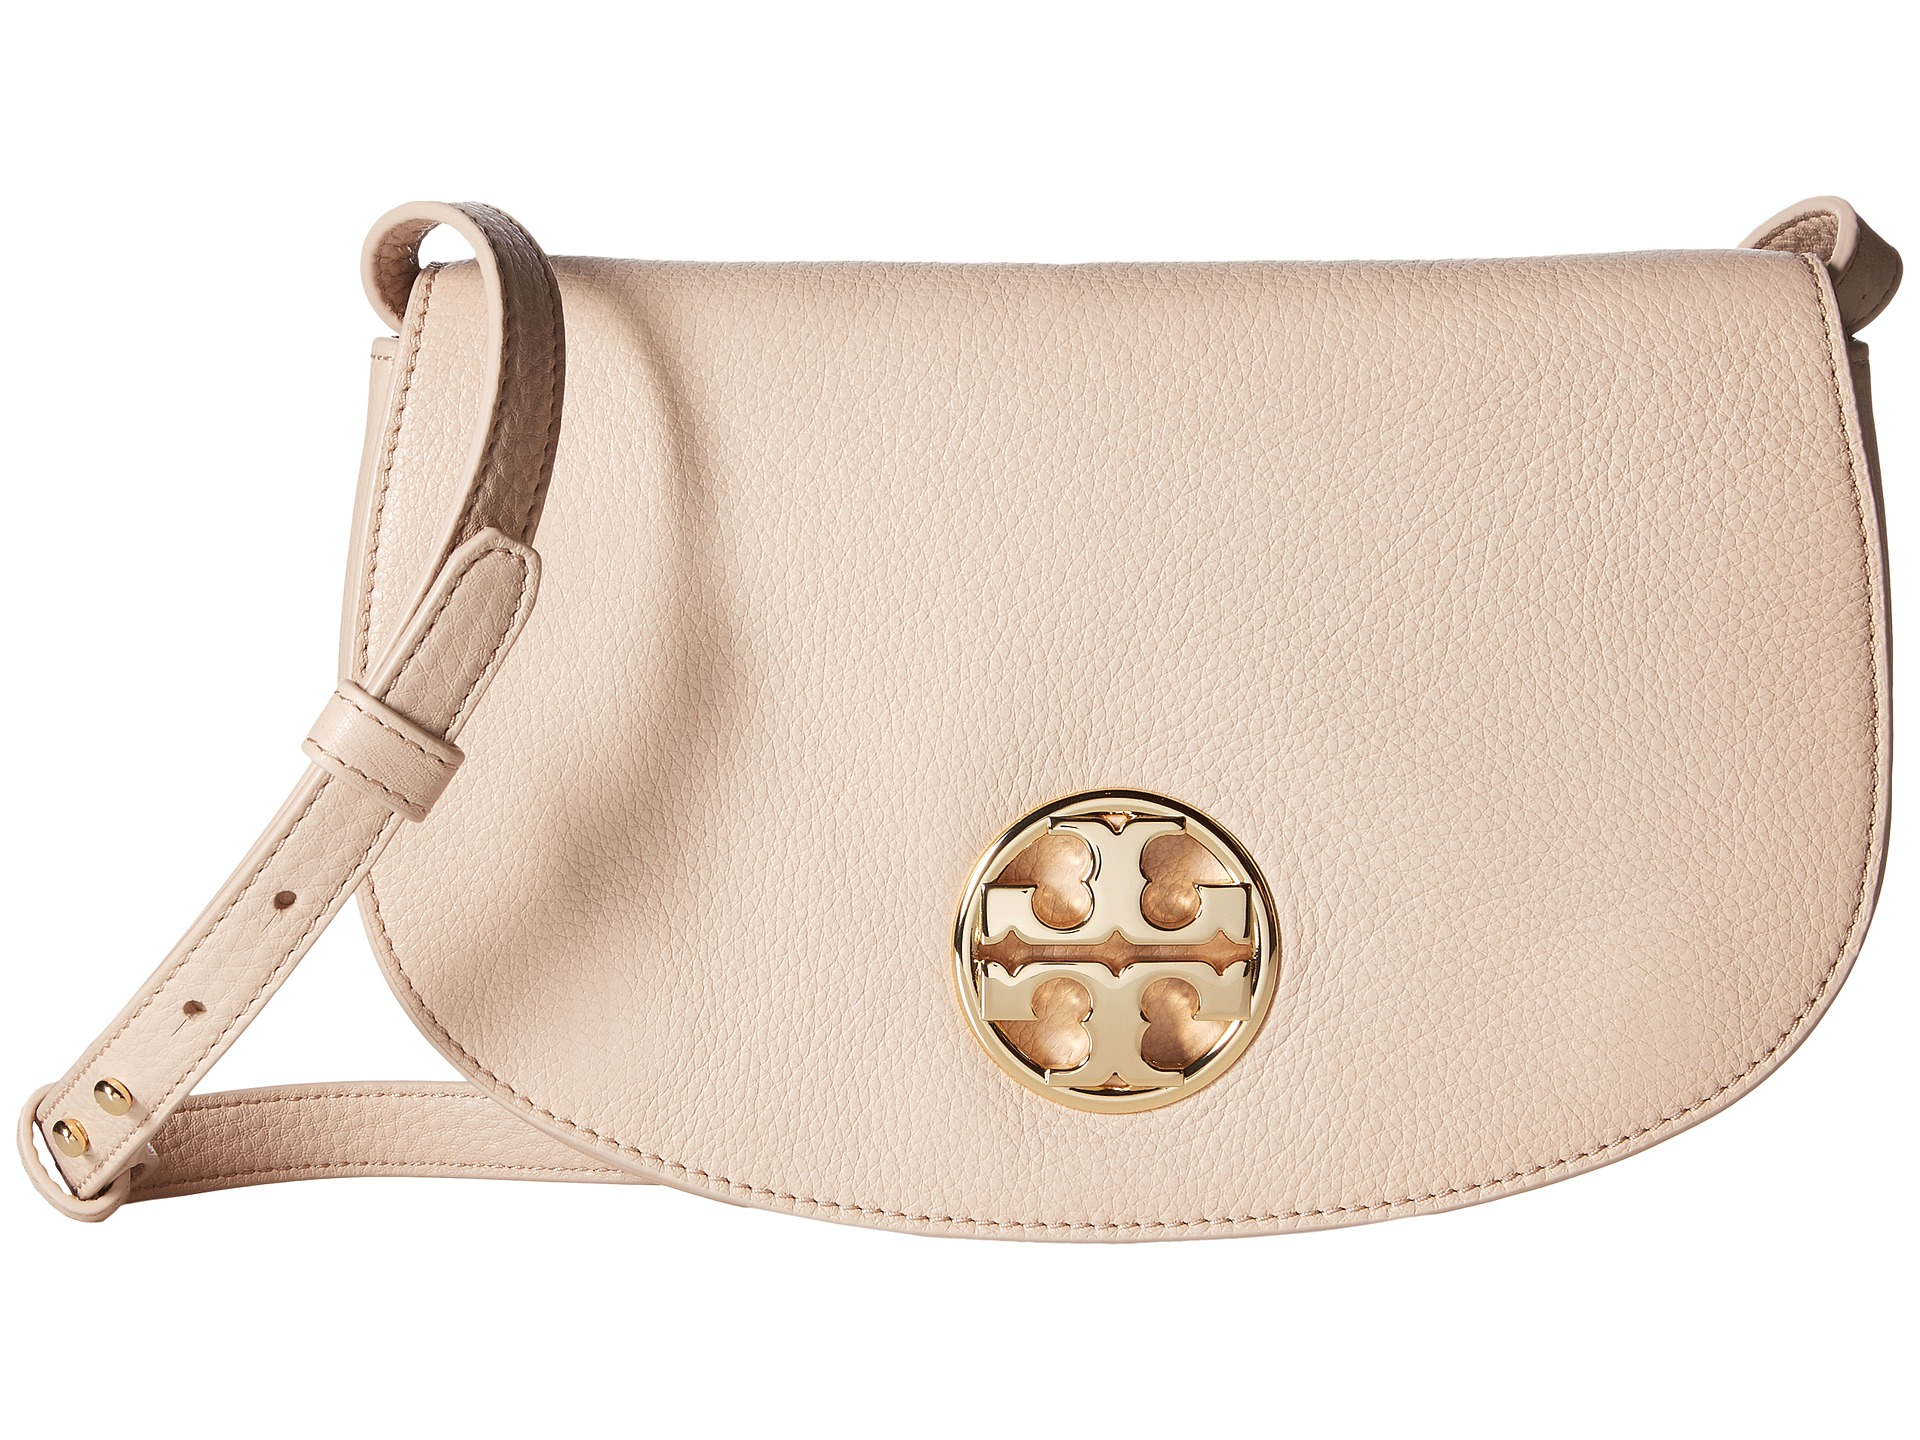 Free shipping on Tory Burch at xhballmill.tk Shop for clothing, shoes and accessories. Totally free shipping & returns.